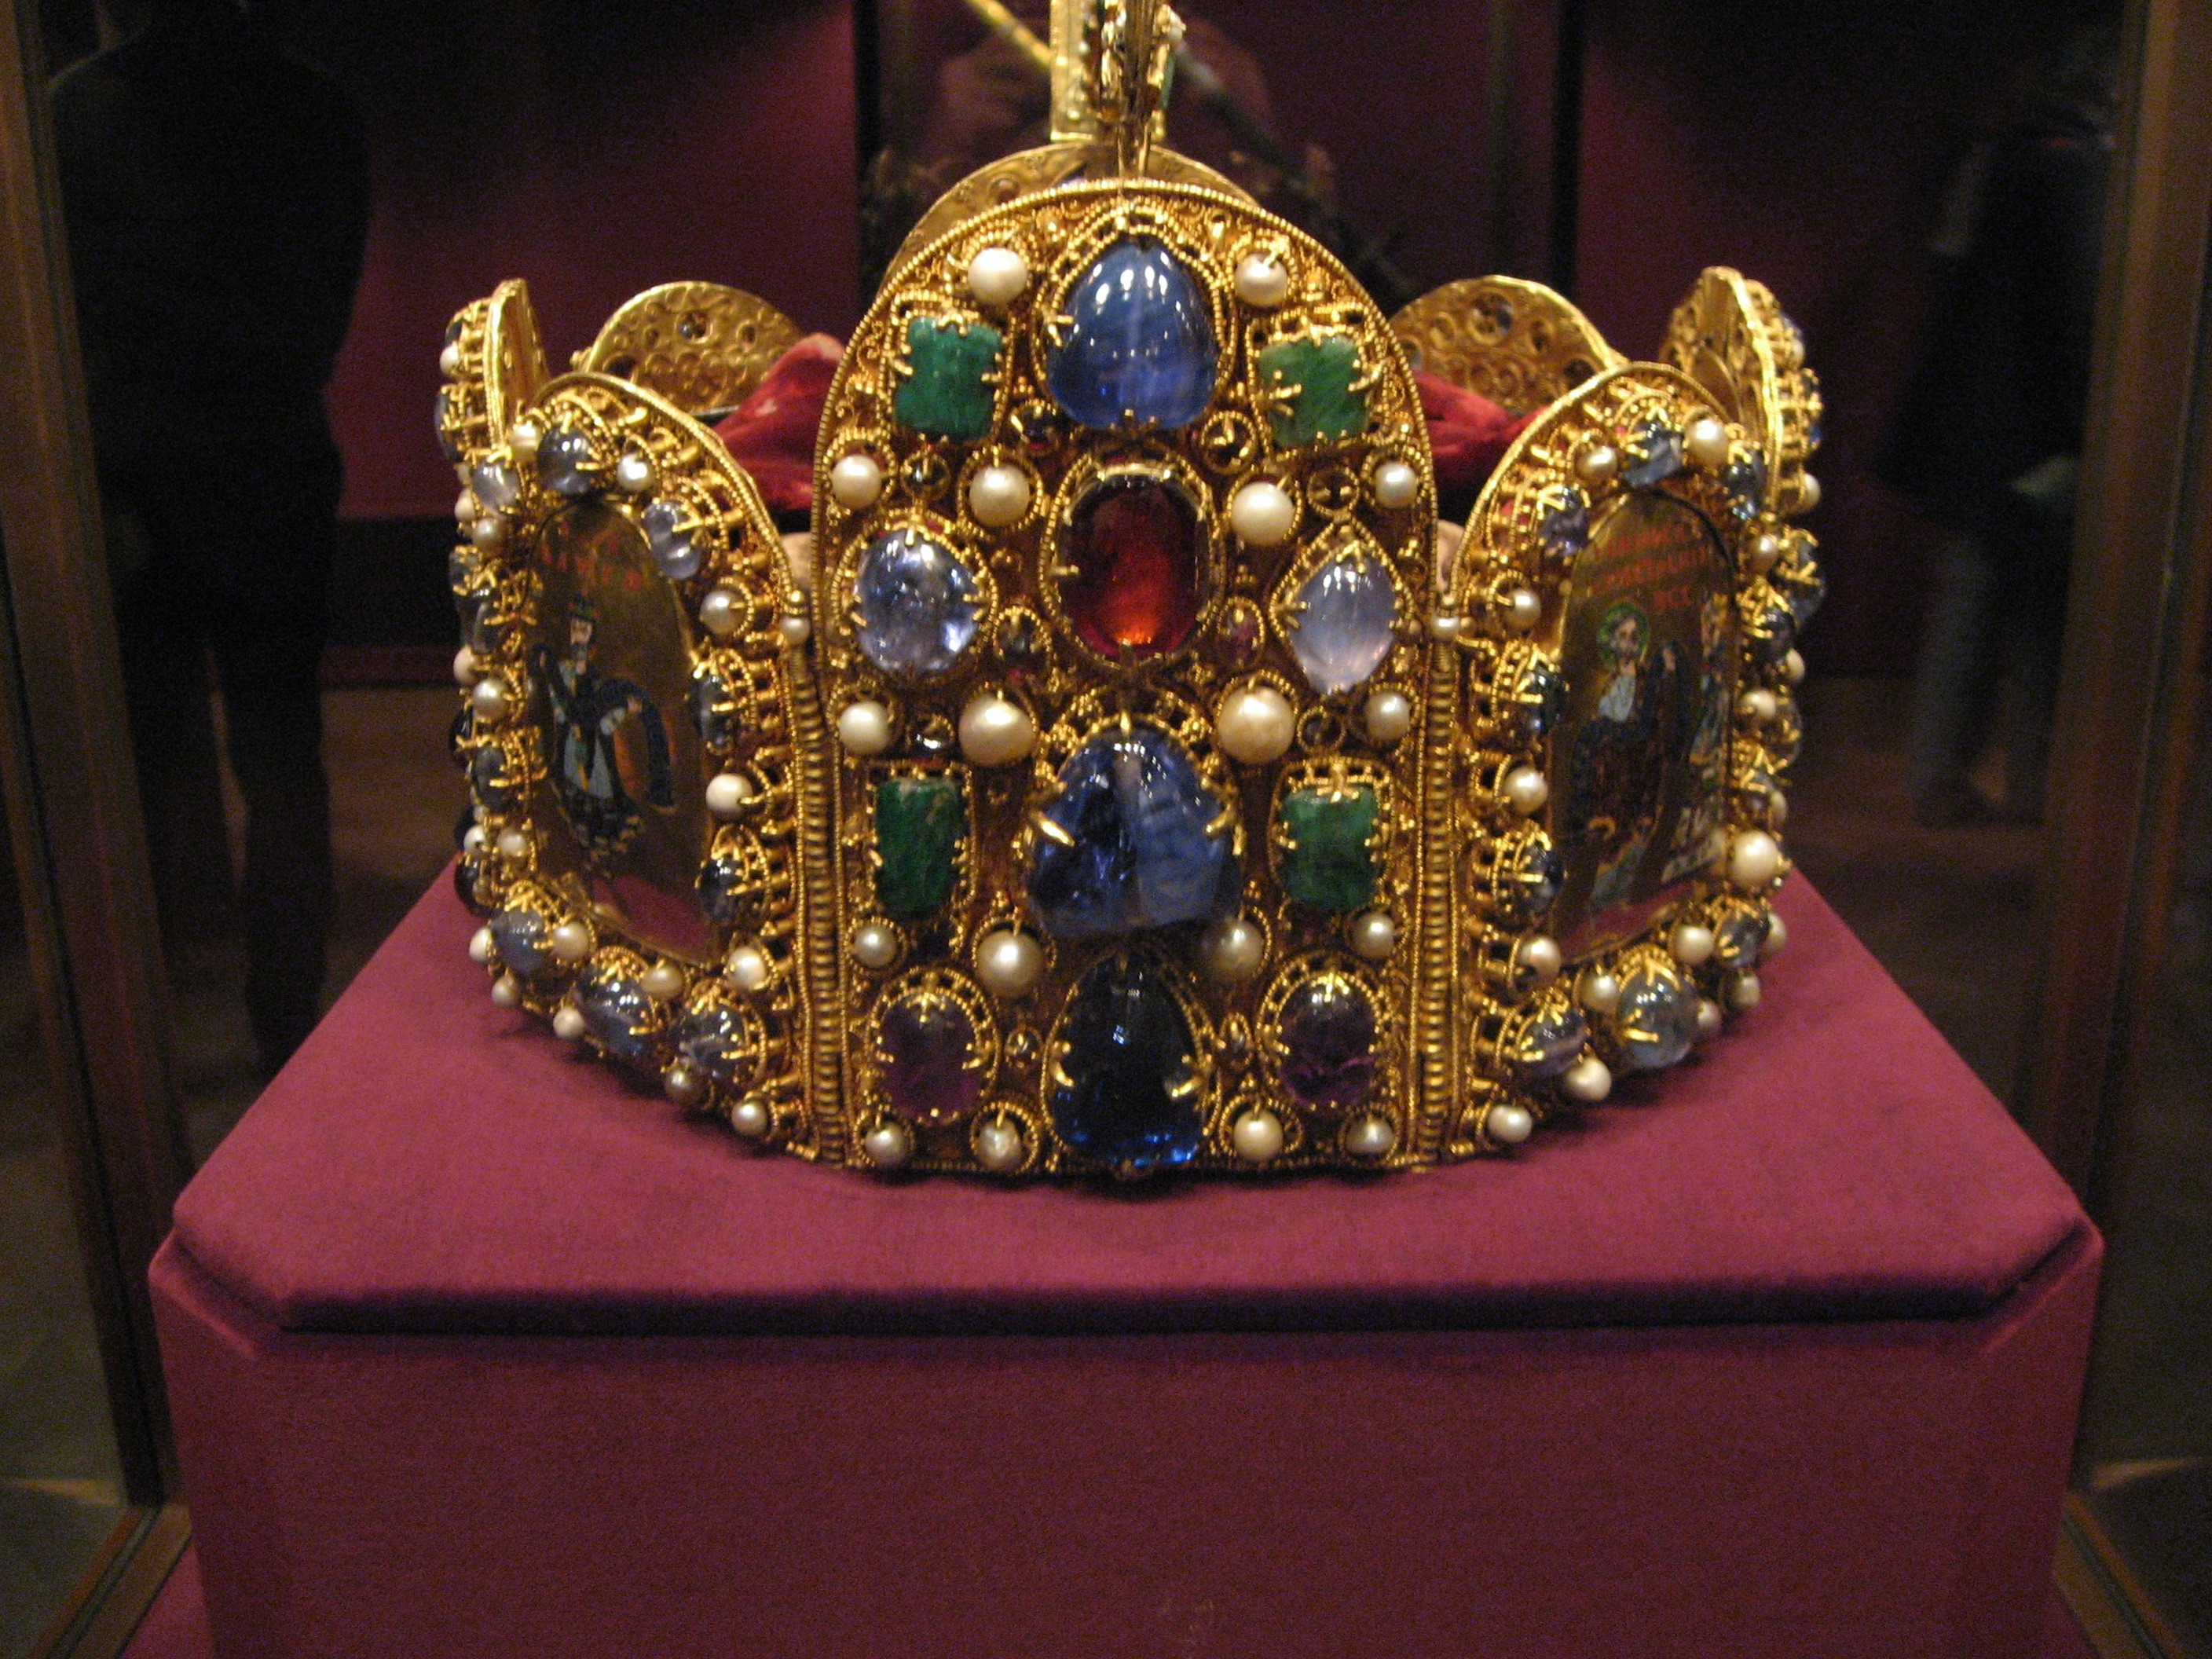 The Imperial Treasury, Vienna: All year